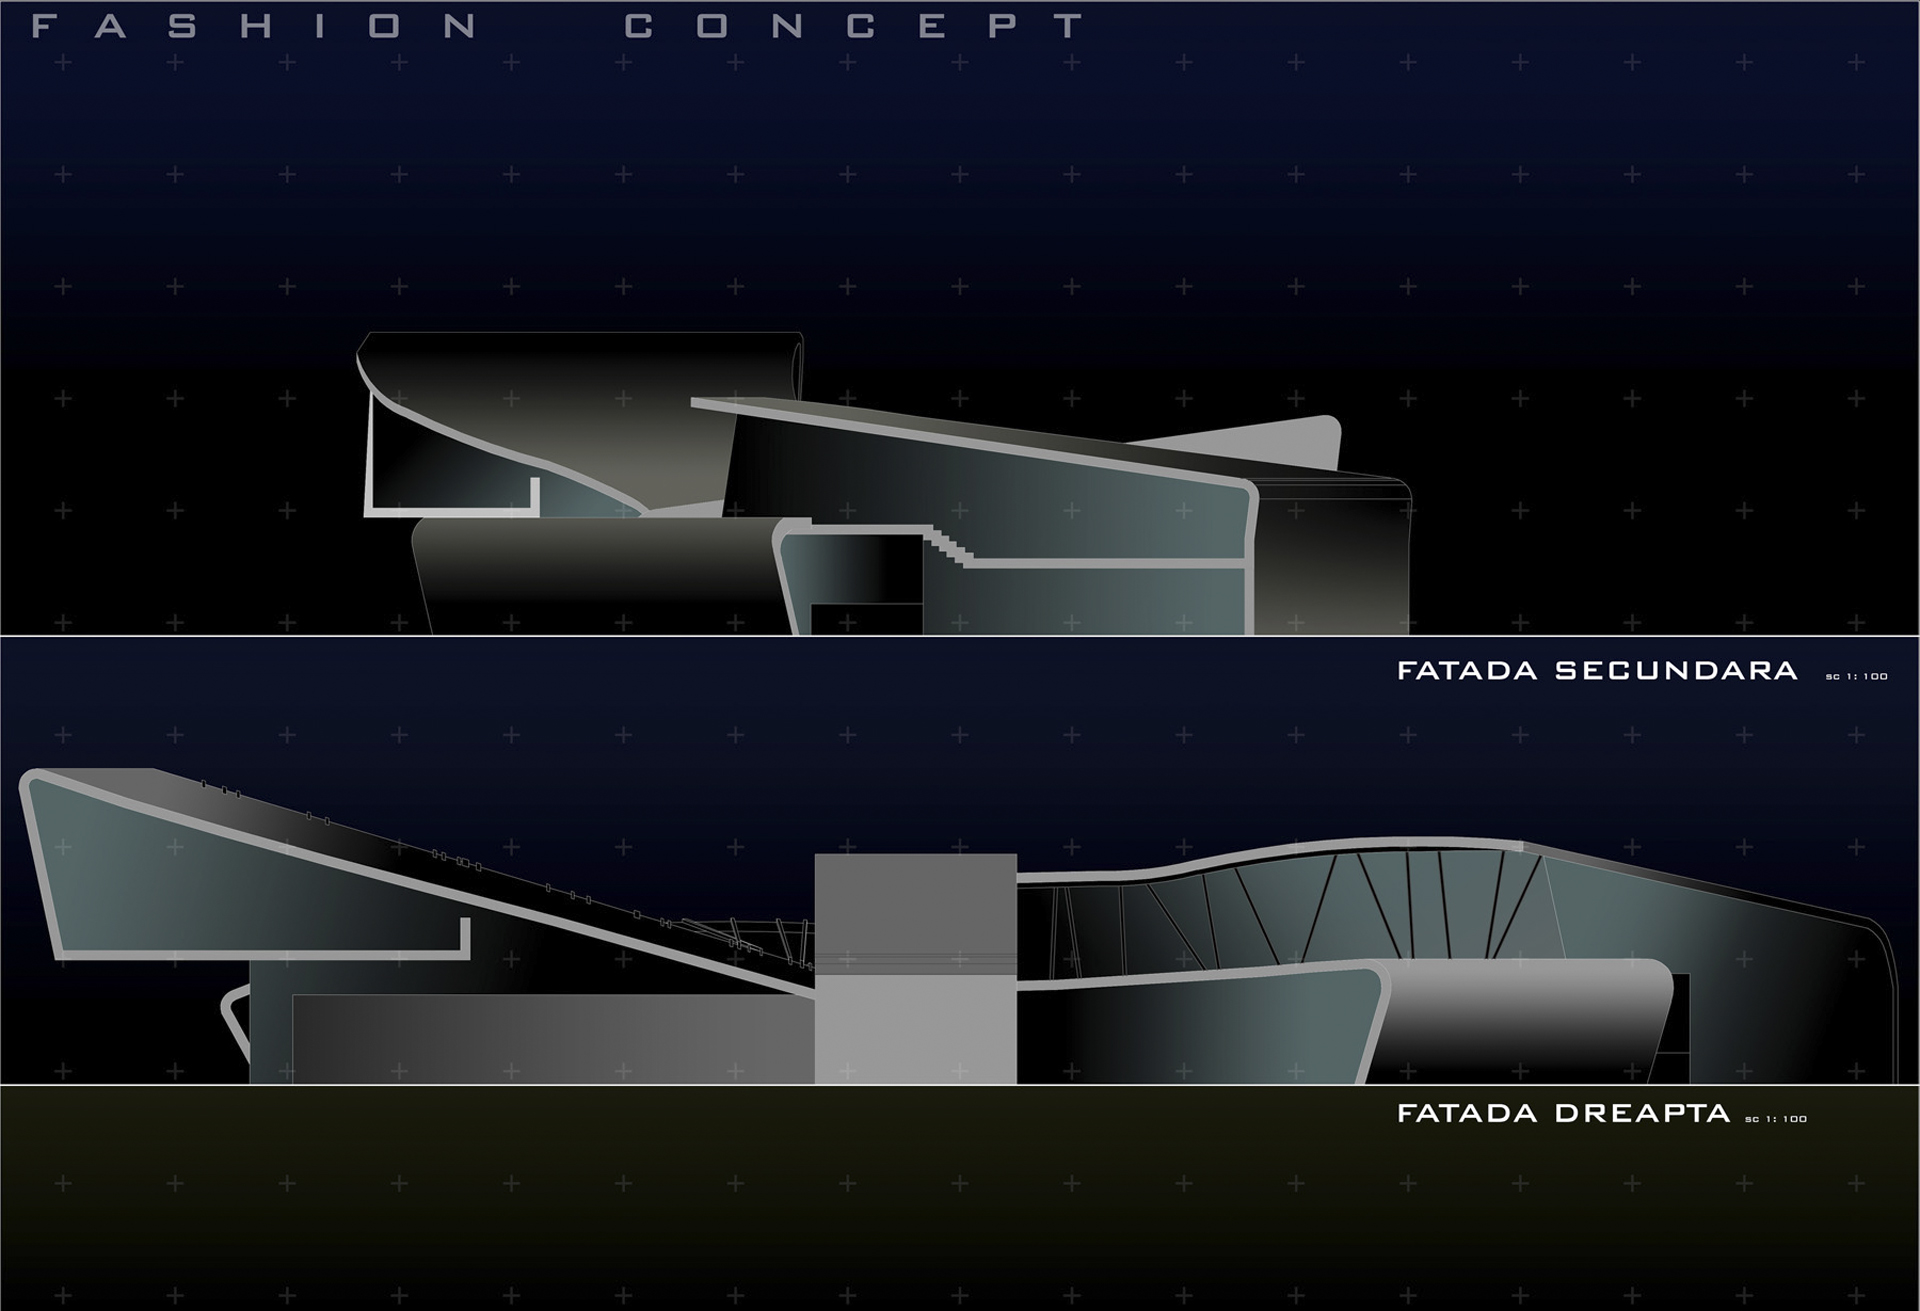 07-inspired-fashion-architecture-concept